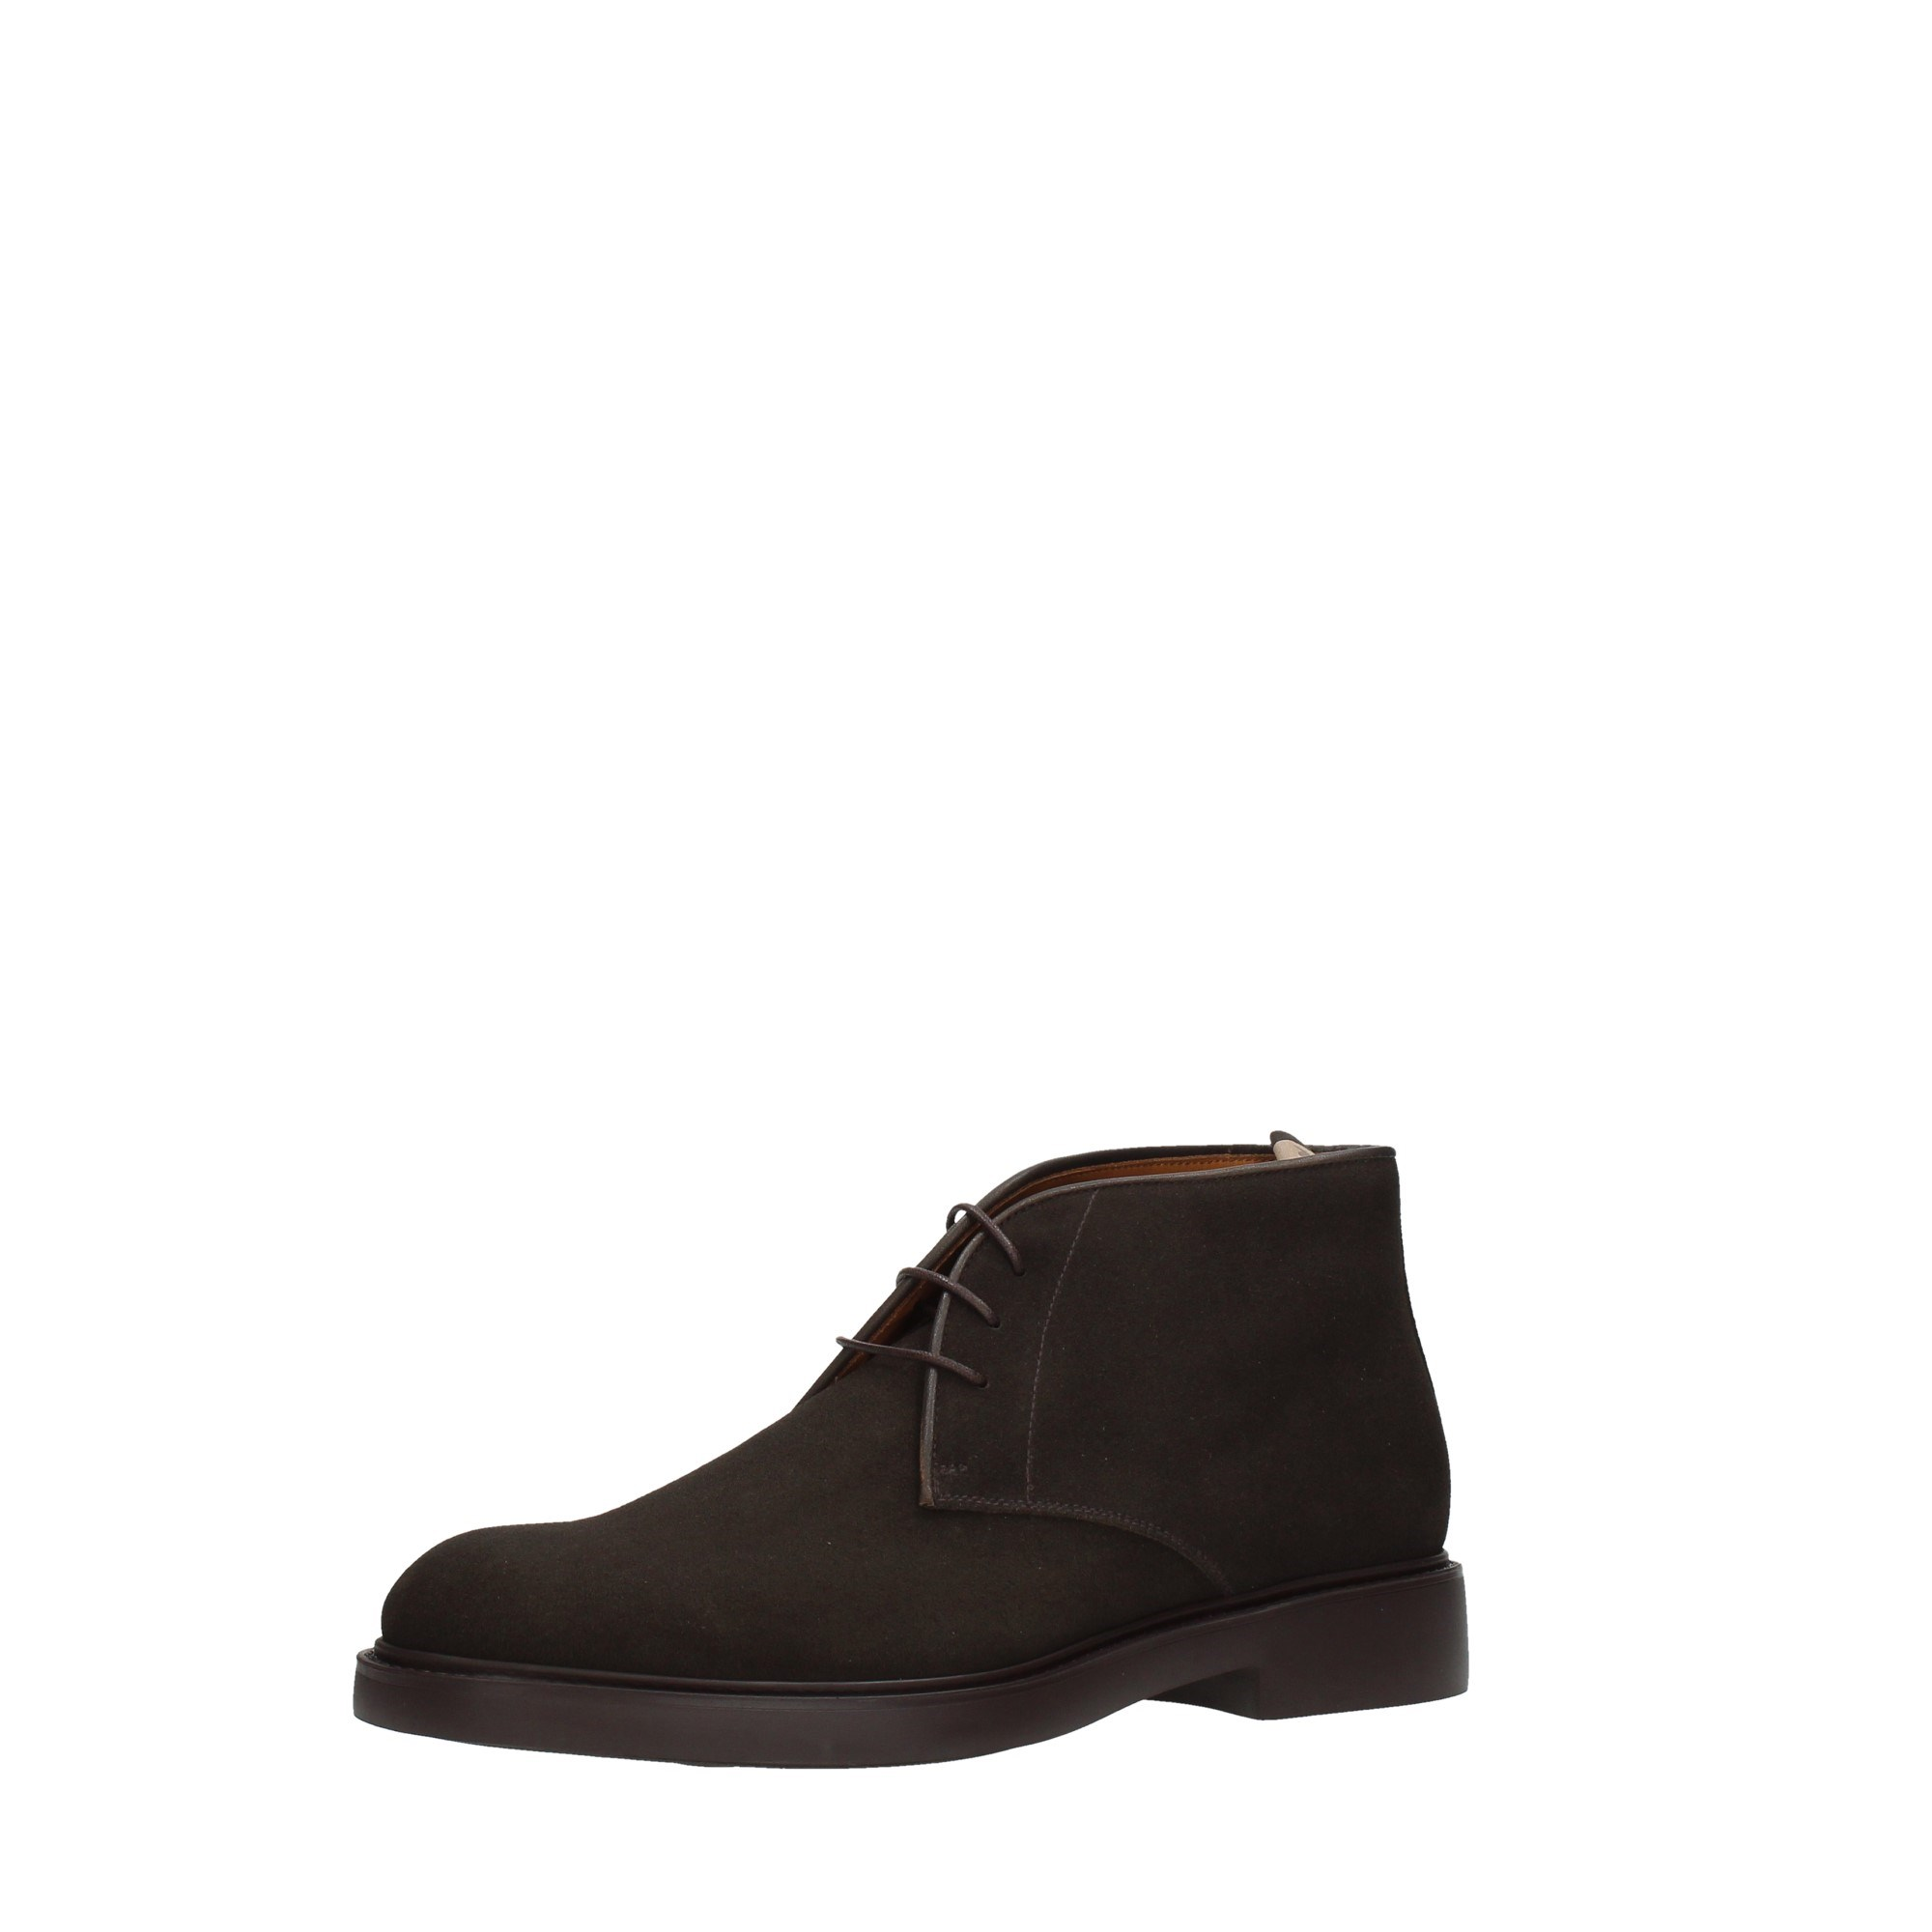 Rossi Shoes Man Booties Brown 8141